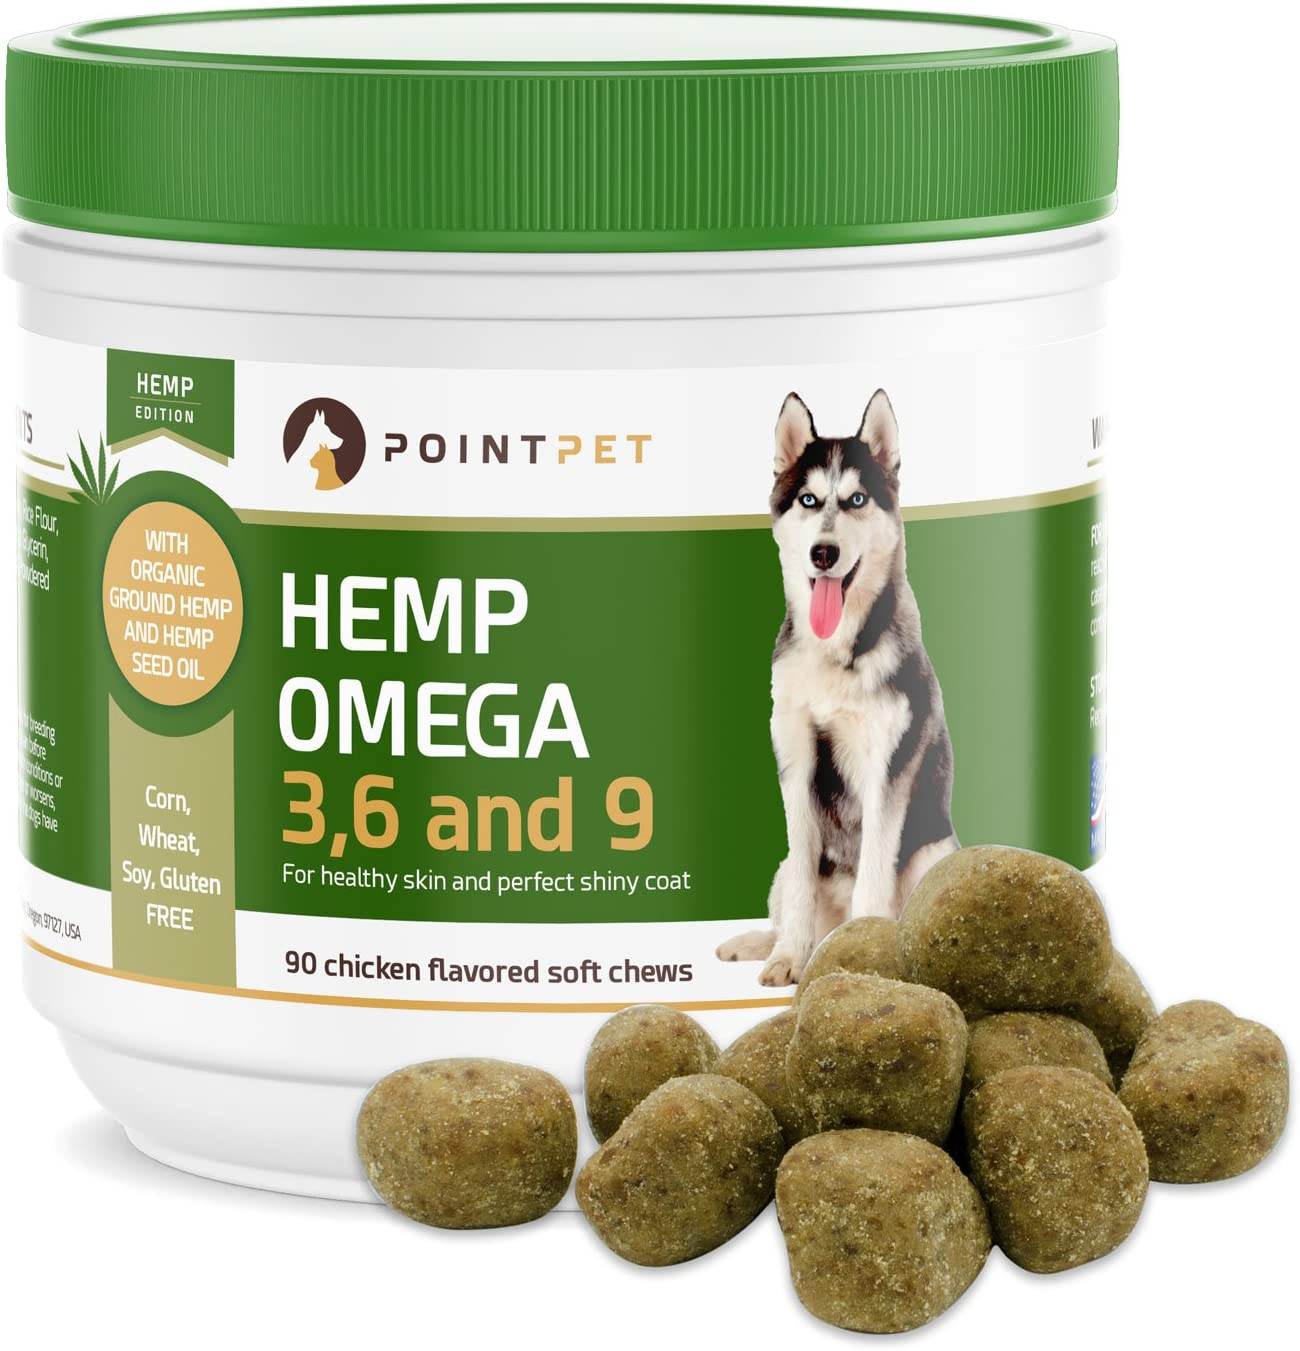 POINTPET Omega 3 6 9 for Dogs with Organic Hemp Oil – Dog Skin and Coat Fish Oil Supplement, Natural Fatty Acids EPA DHA, Helps with Dry and Itchy Skin, Joints, Heart and Brain Health, 90 Soft Chews